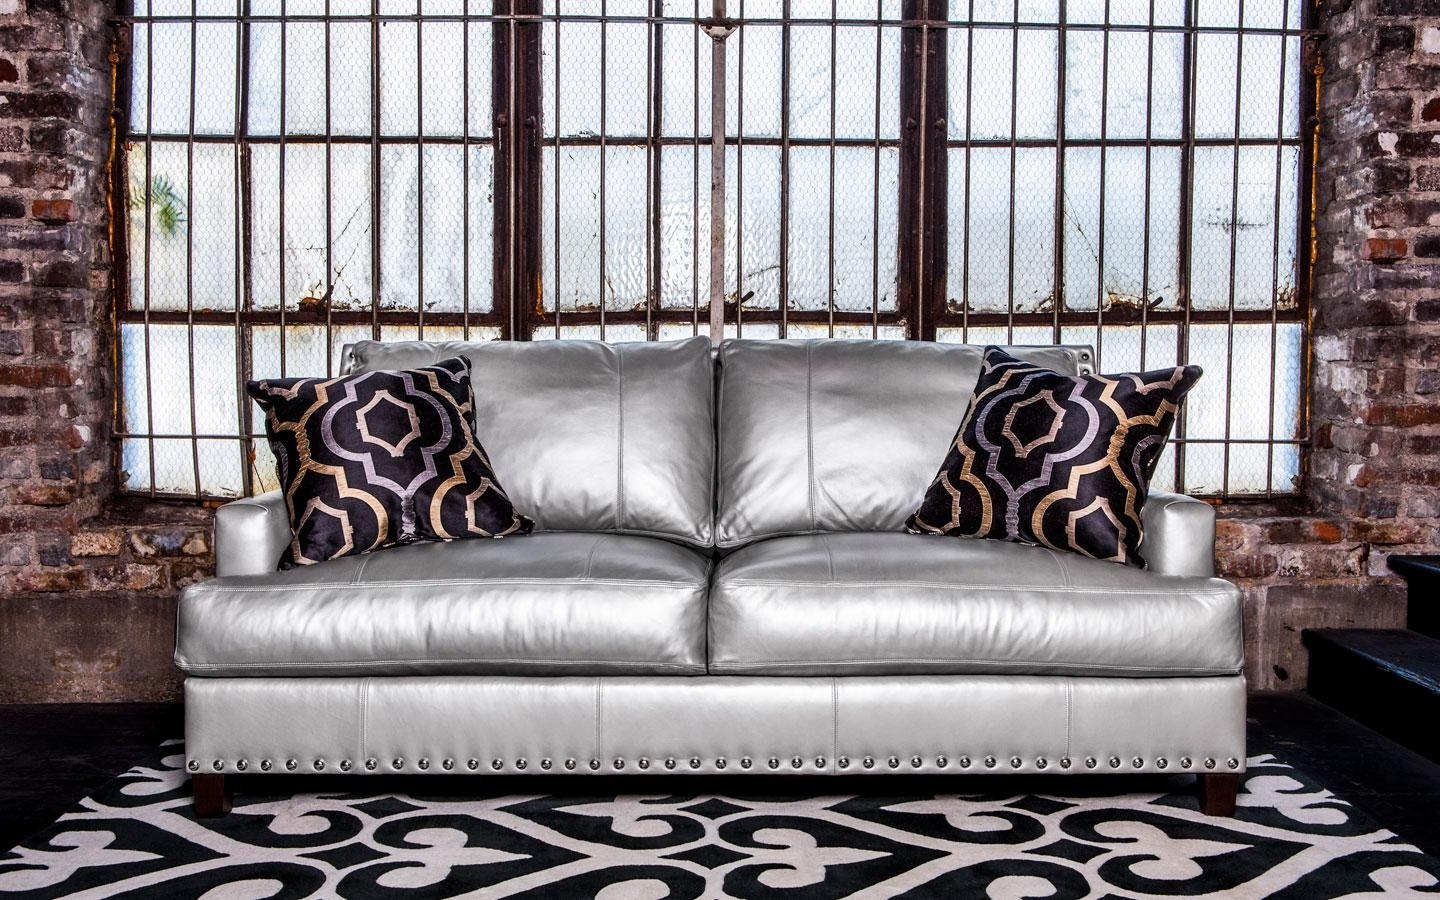 Norwalk Furniture ~ Home & Interior Design within Norwalk Sofa And Chairs